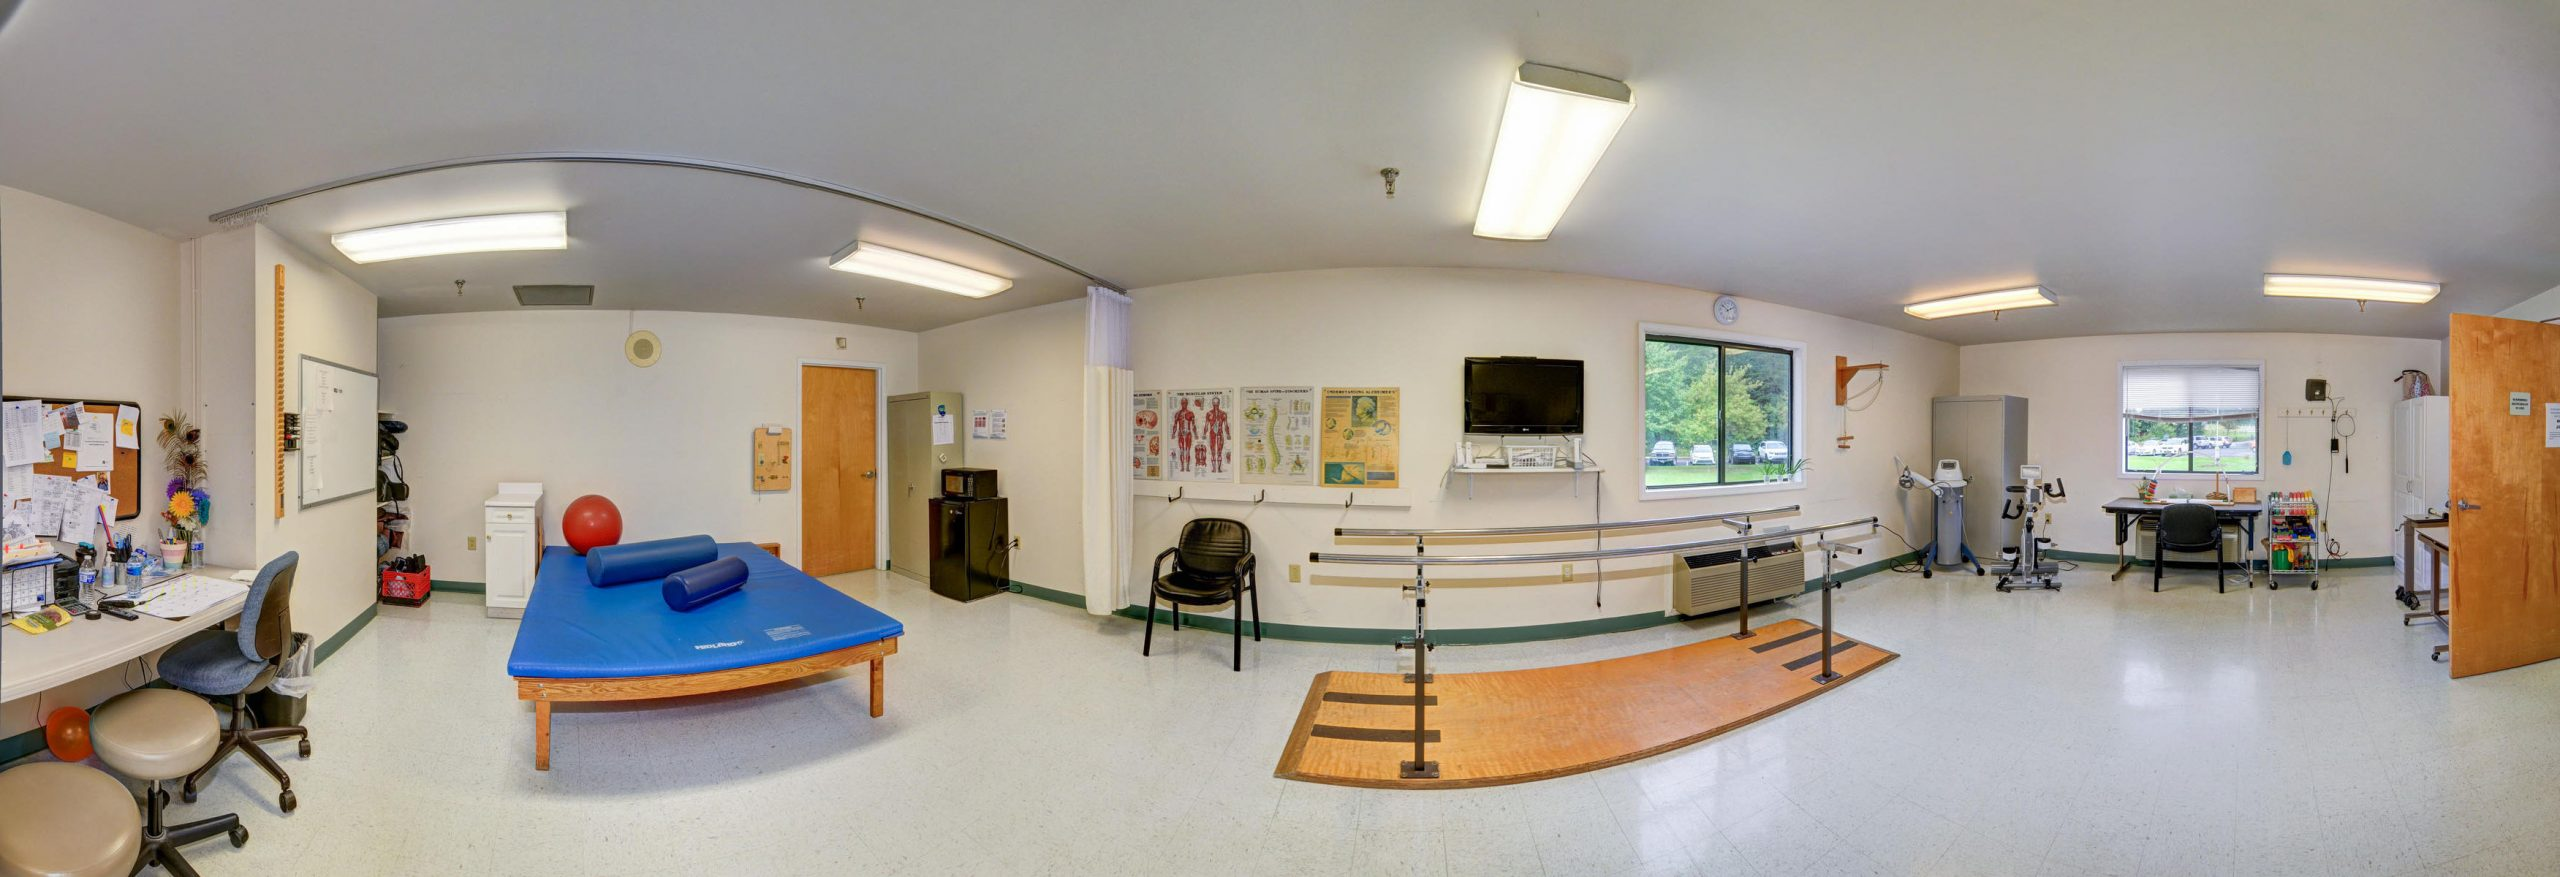 Panoramic view of Stonerise Berkeley Springs Therapy and Rehabilitation area with equipment and desk